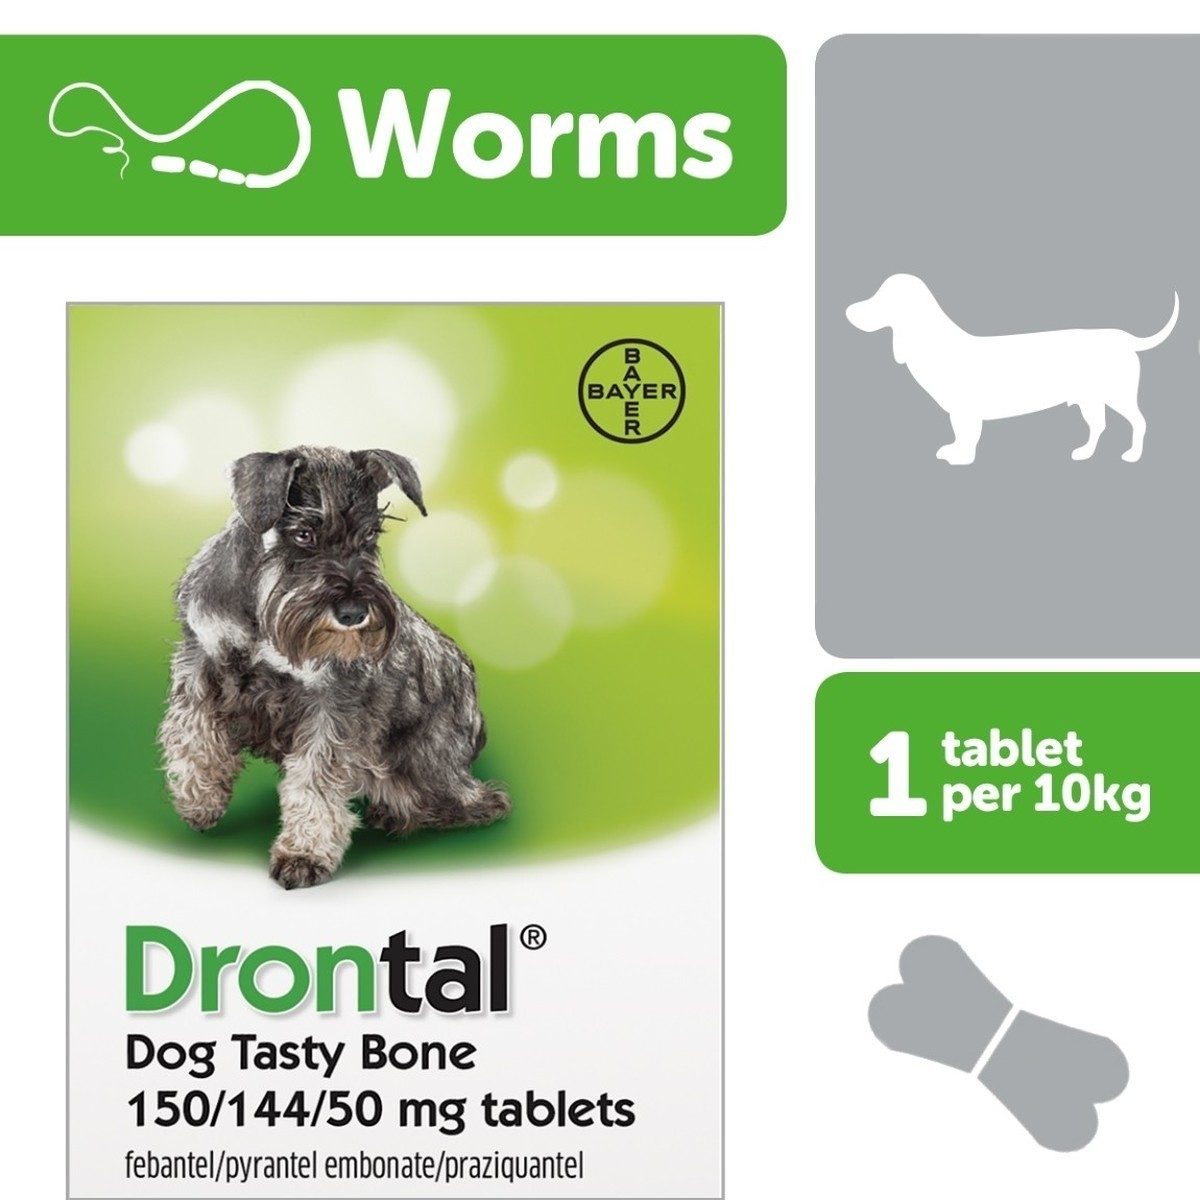 Drontal Dog Tasty Bone Worming Tablets From 1 68